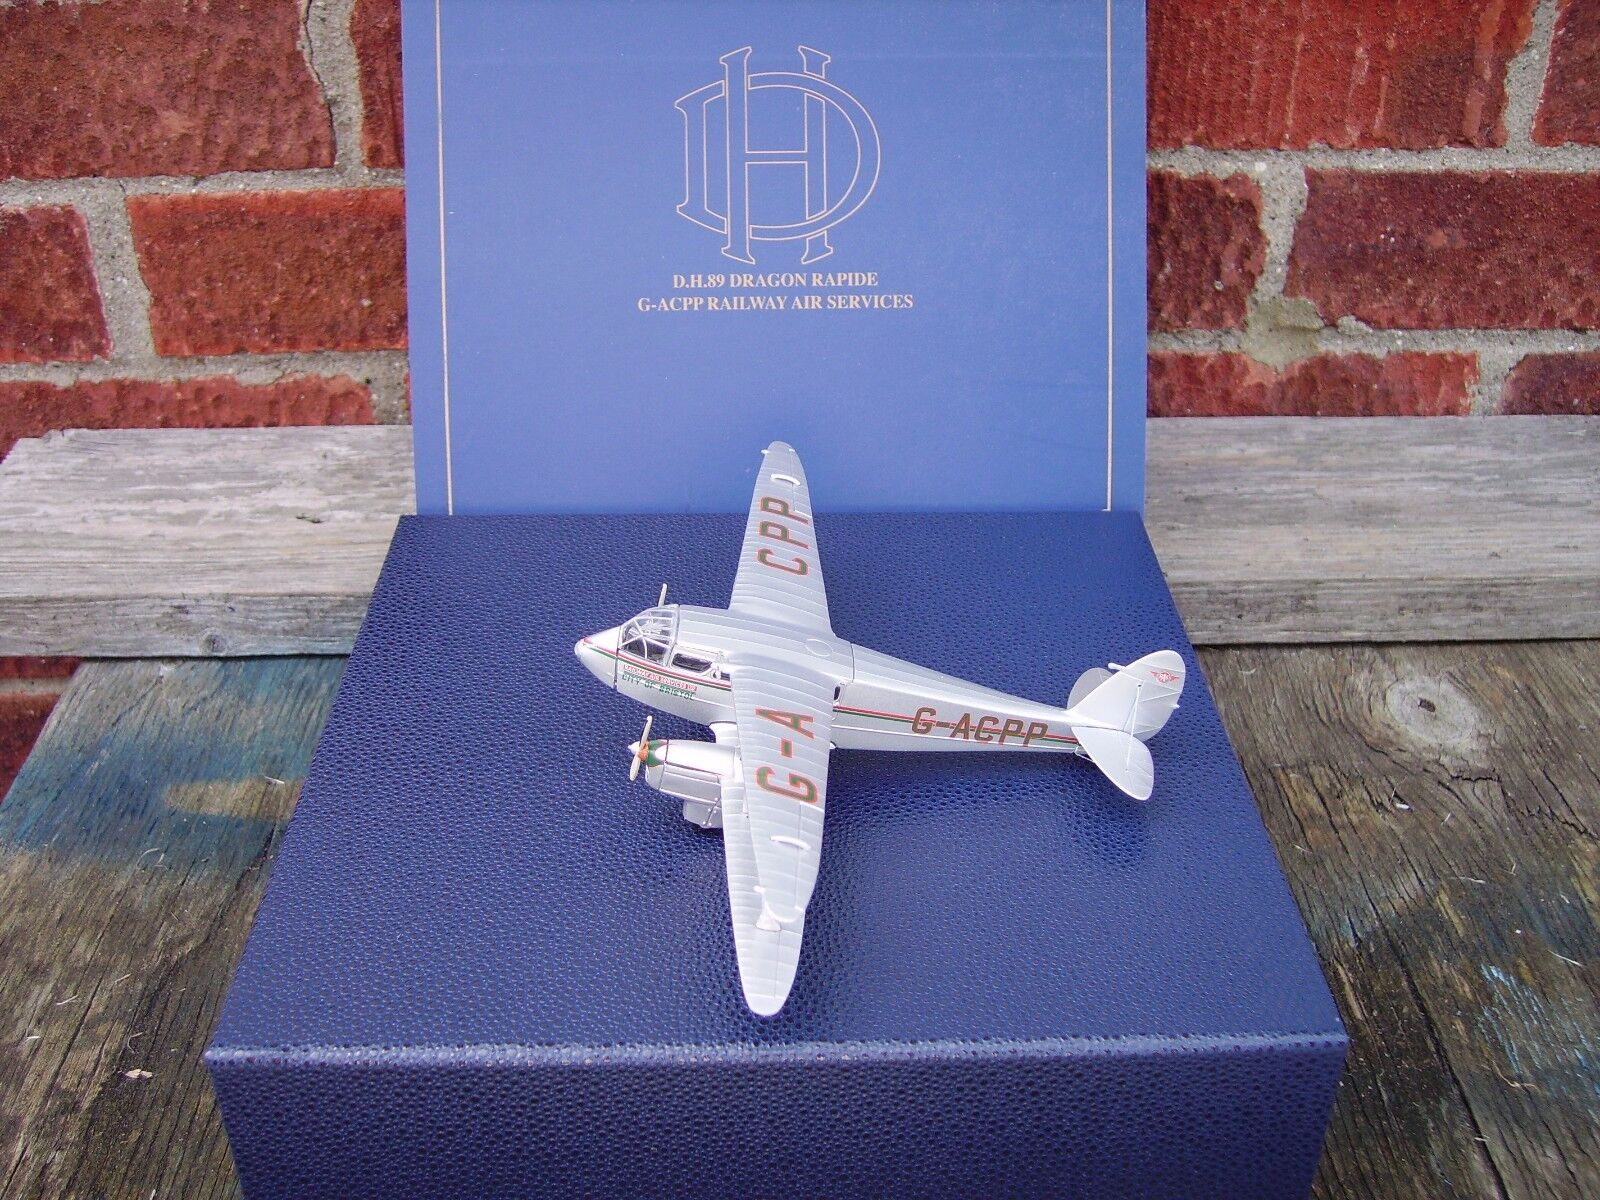 OXFORD DIECAST 1 72 SCALE DH.DRAGON RAPIDE   RAILWAY AIR SERVICES G-ACPP